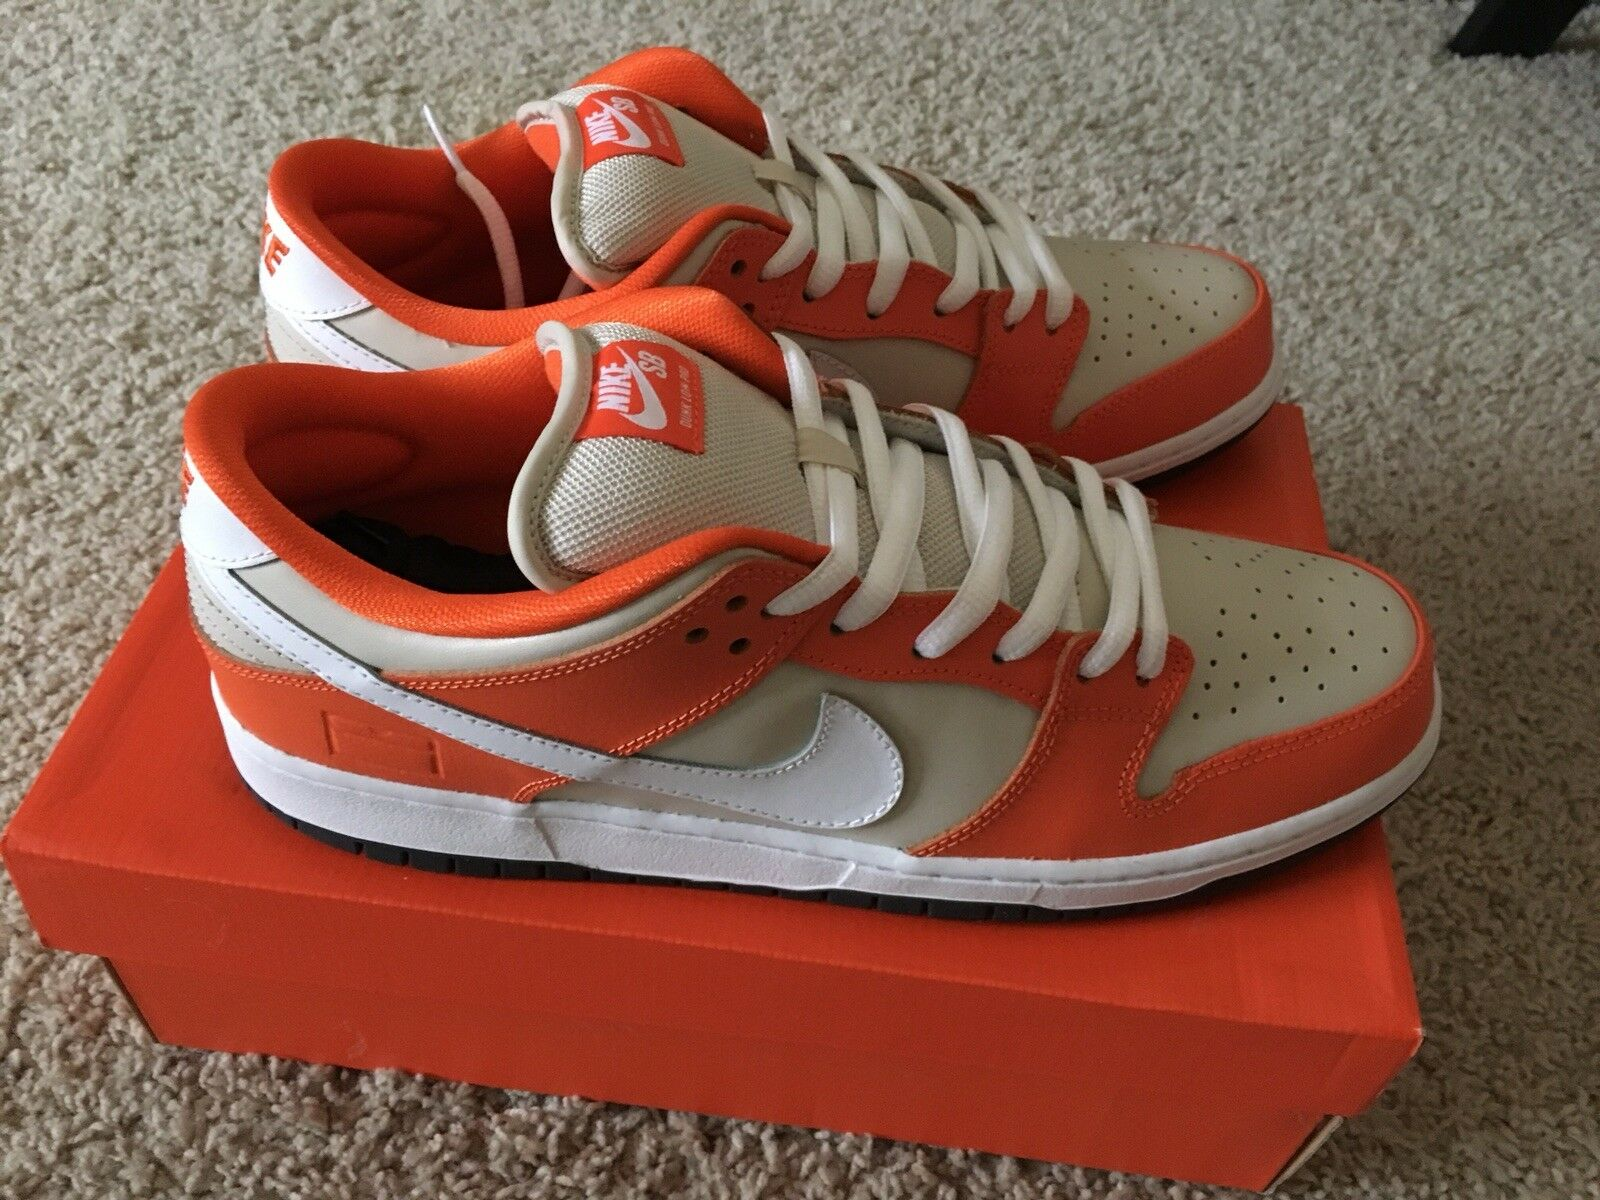 Nike Dunk Low SB Orange Box Size 12 - Rare - Deadstock